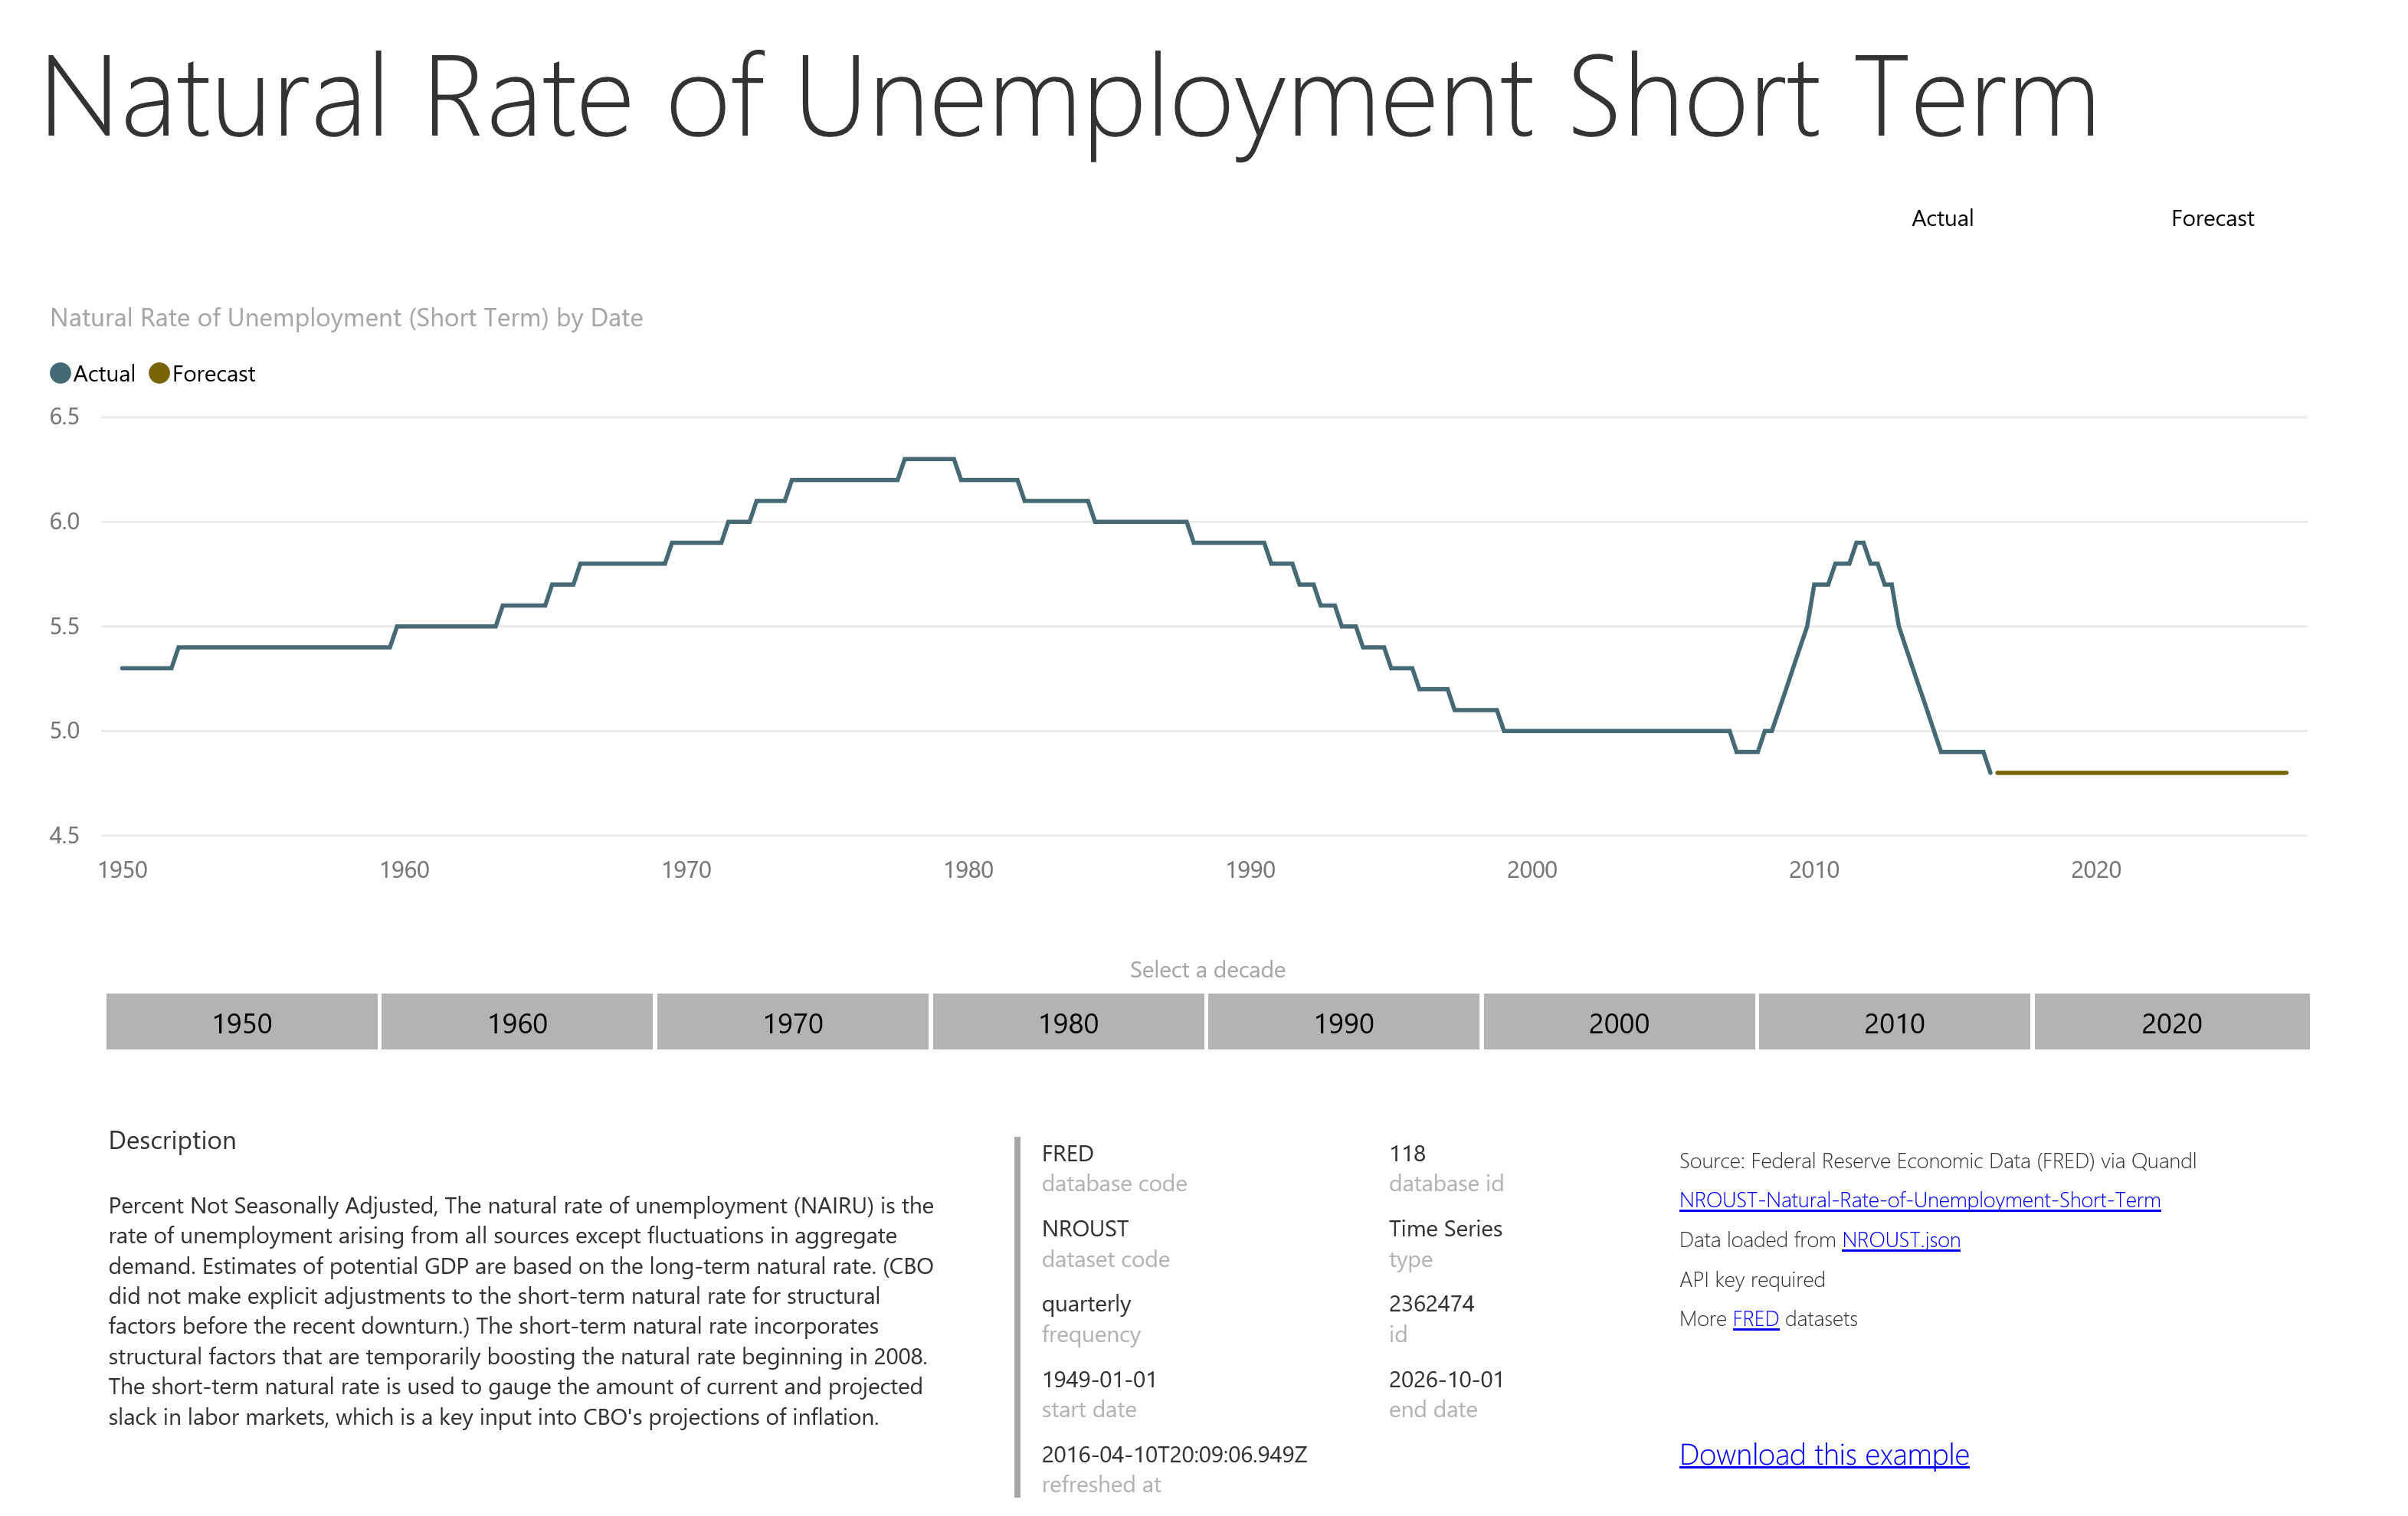 Natural Rate of Unemployment Short Term